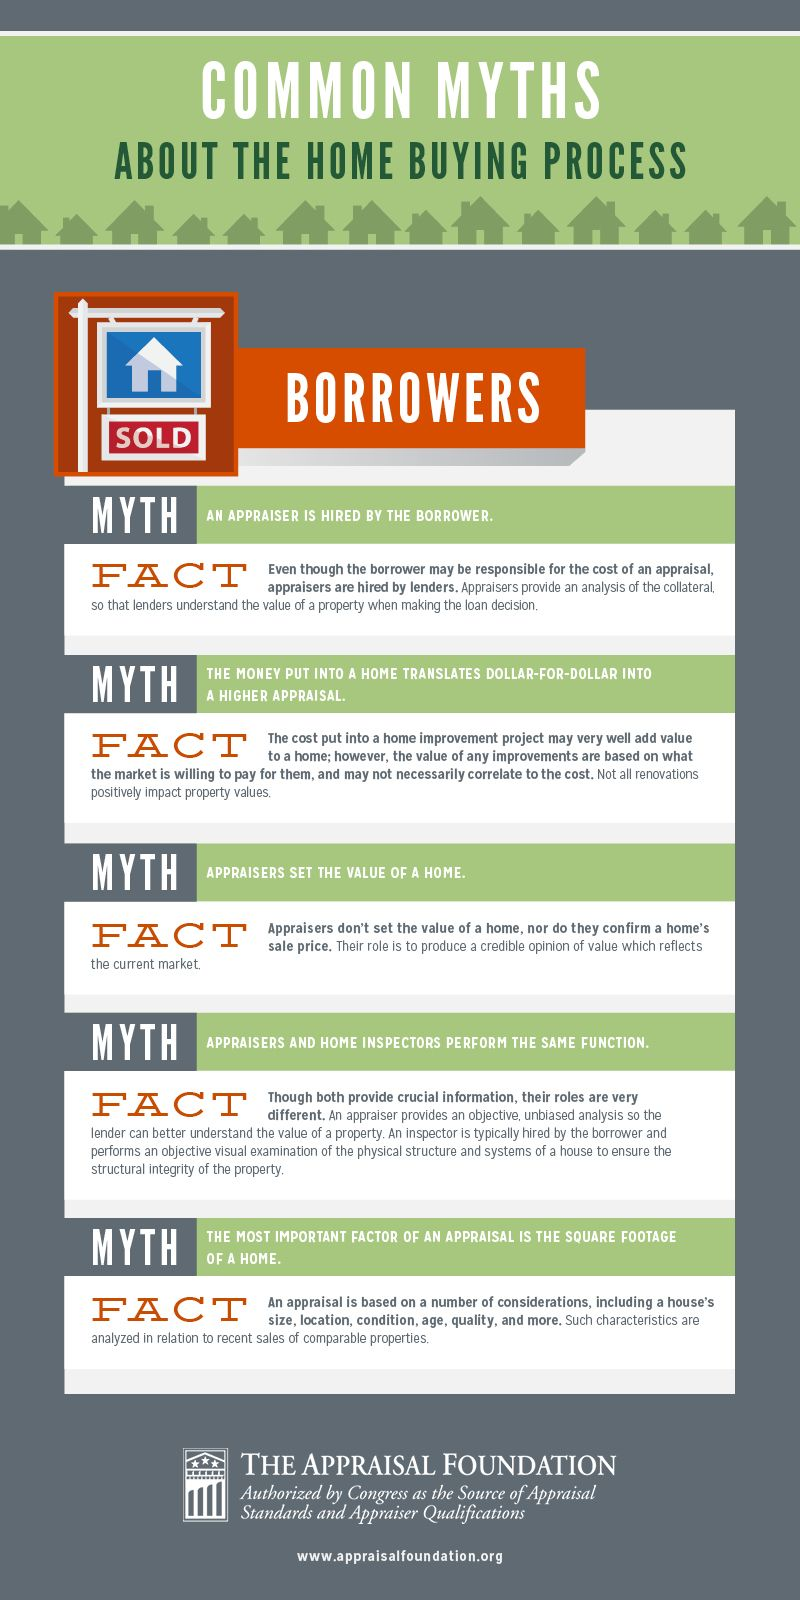 INFOGRAPHIC mon Myths About The Home Buying Process